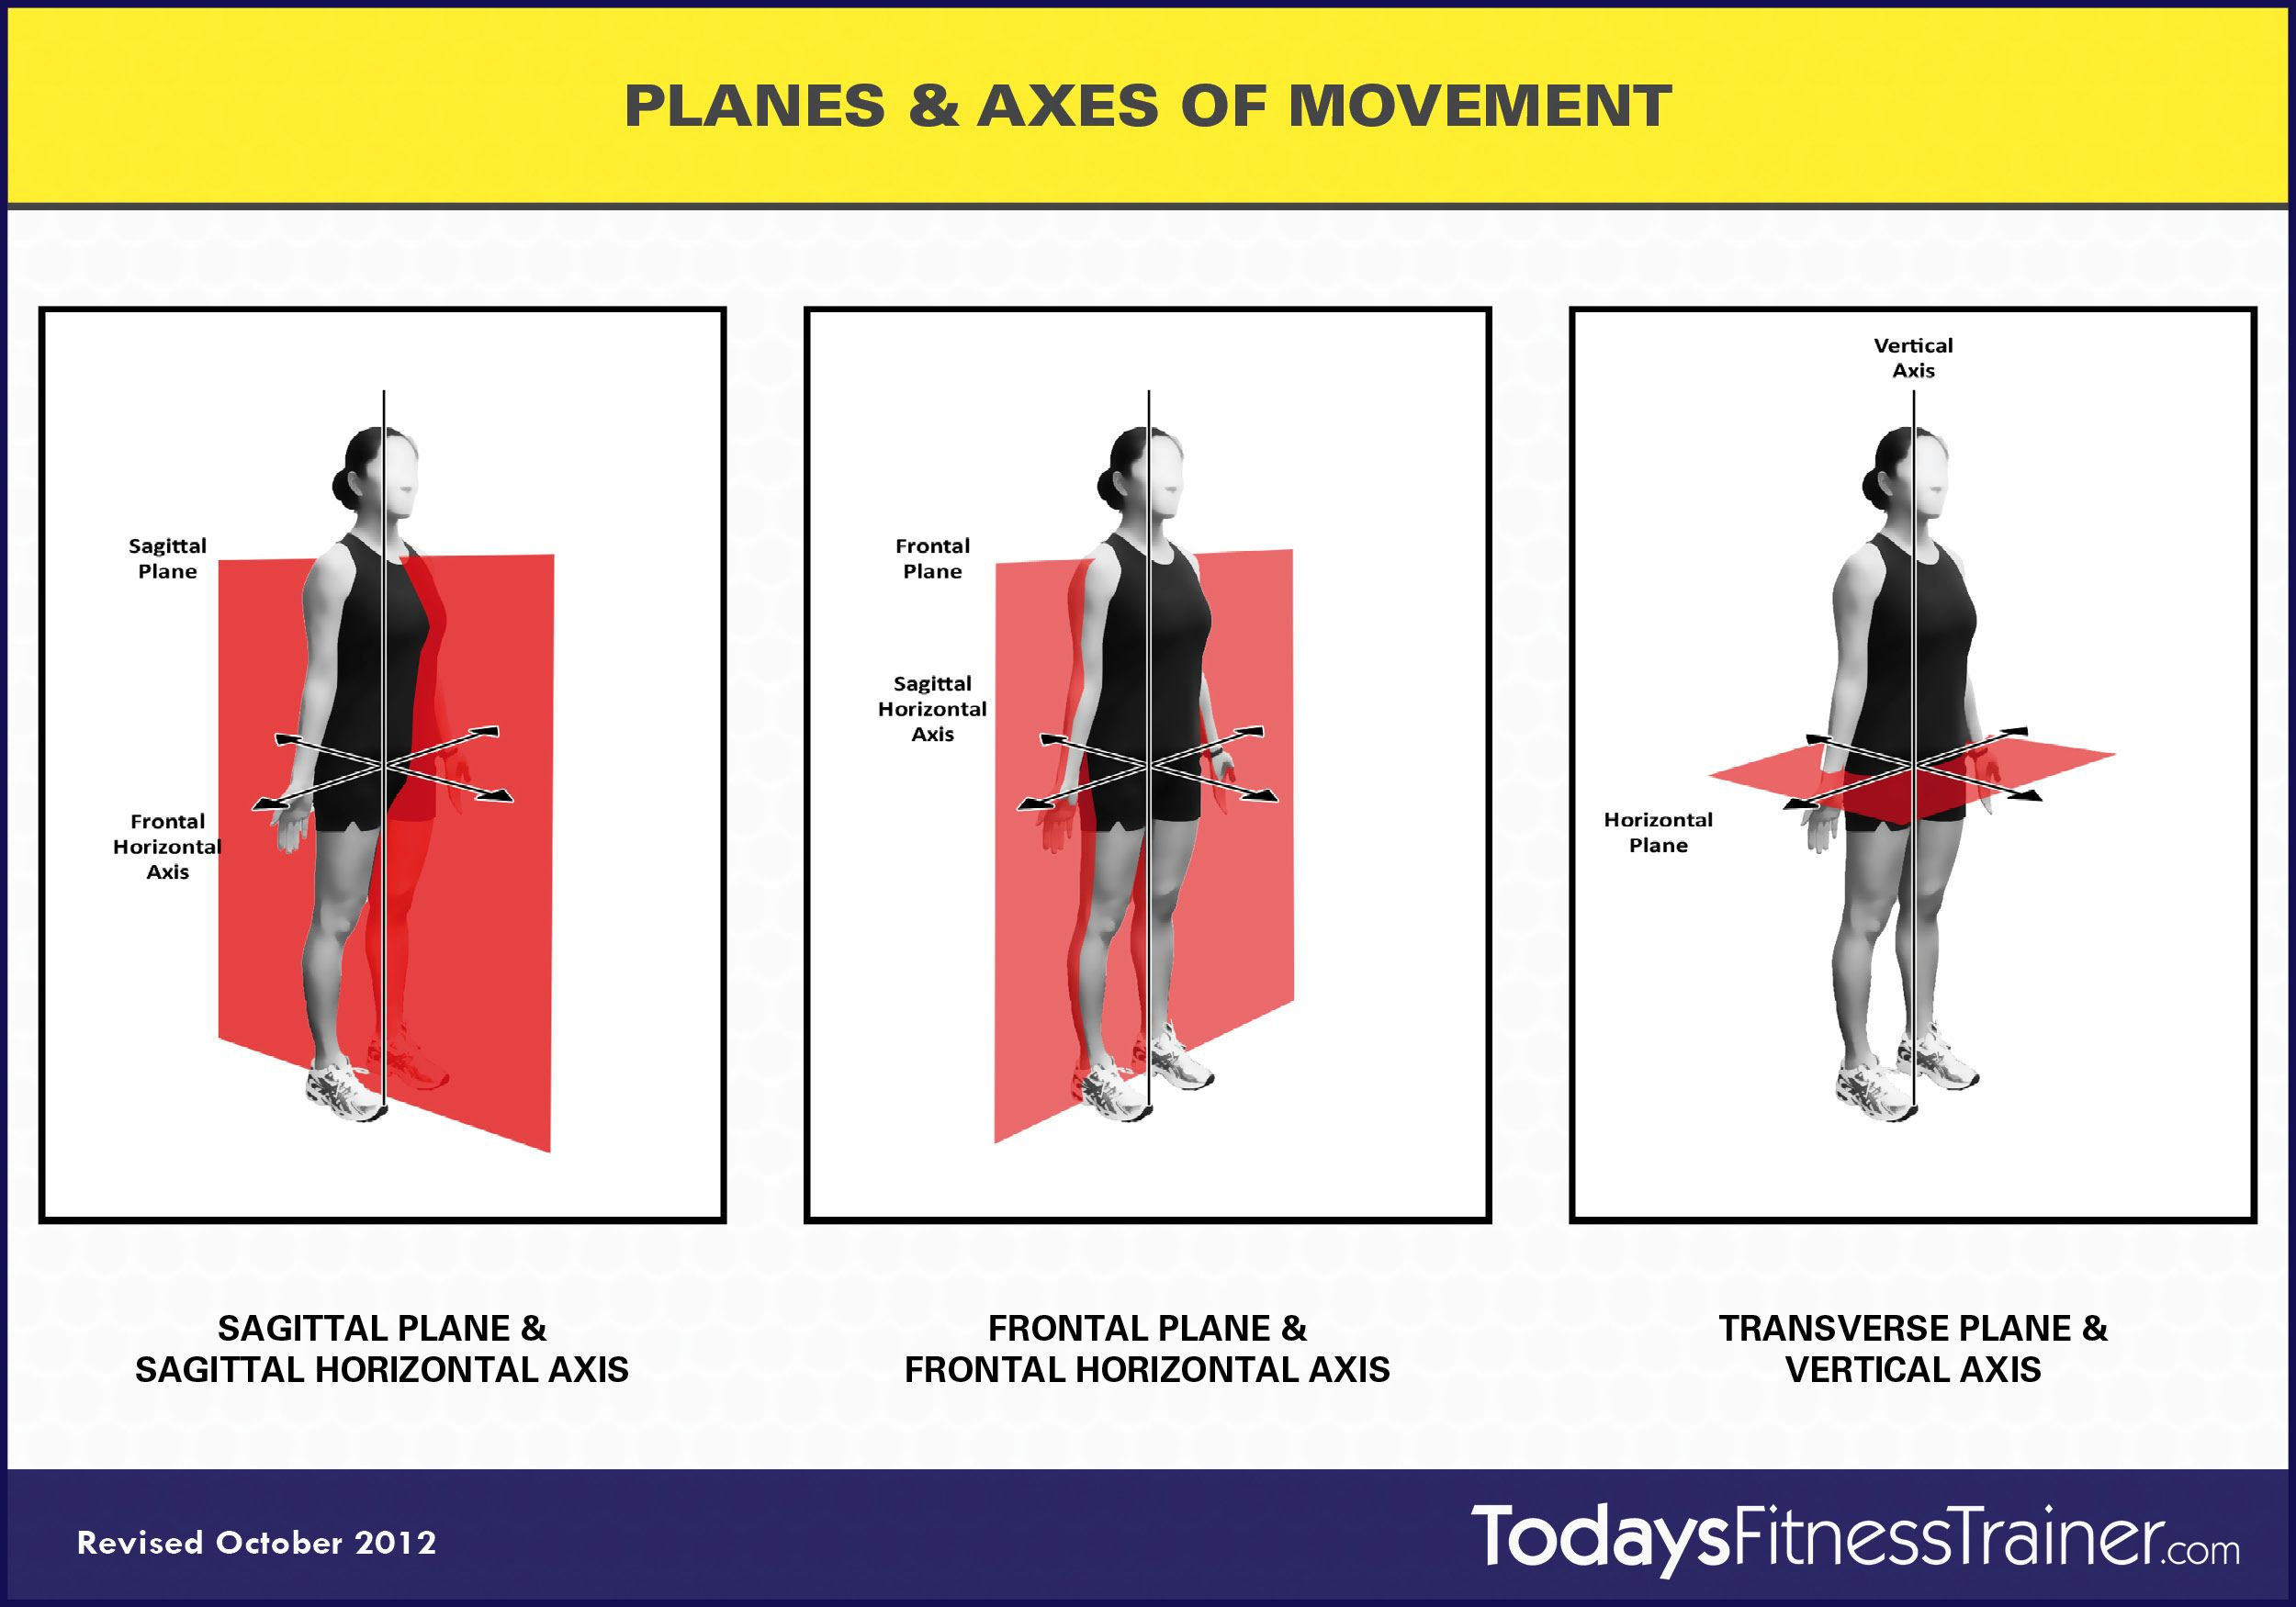 anatomical planes and axis planes axes of movement